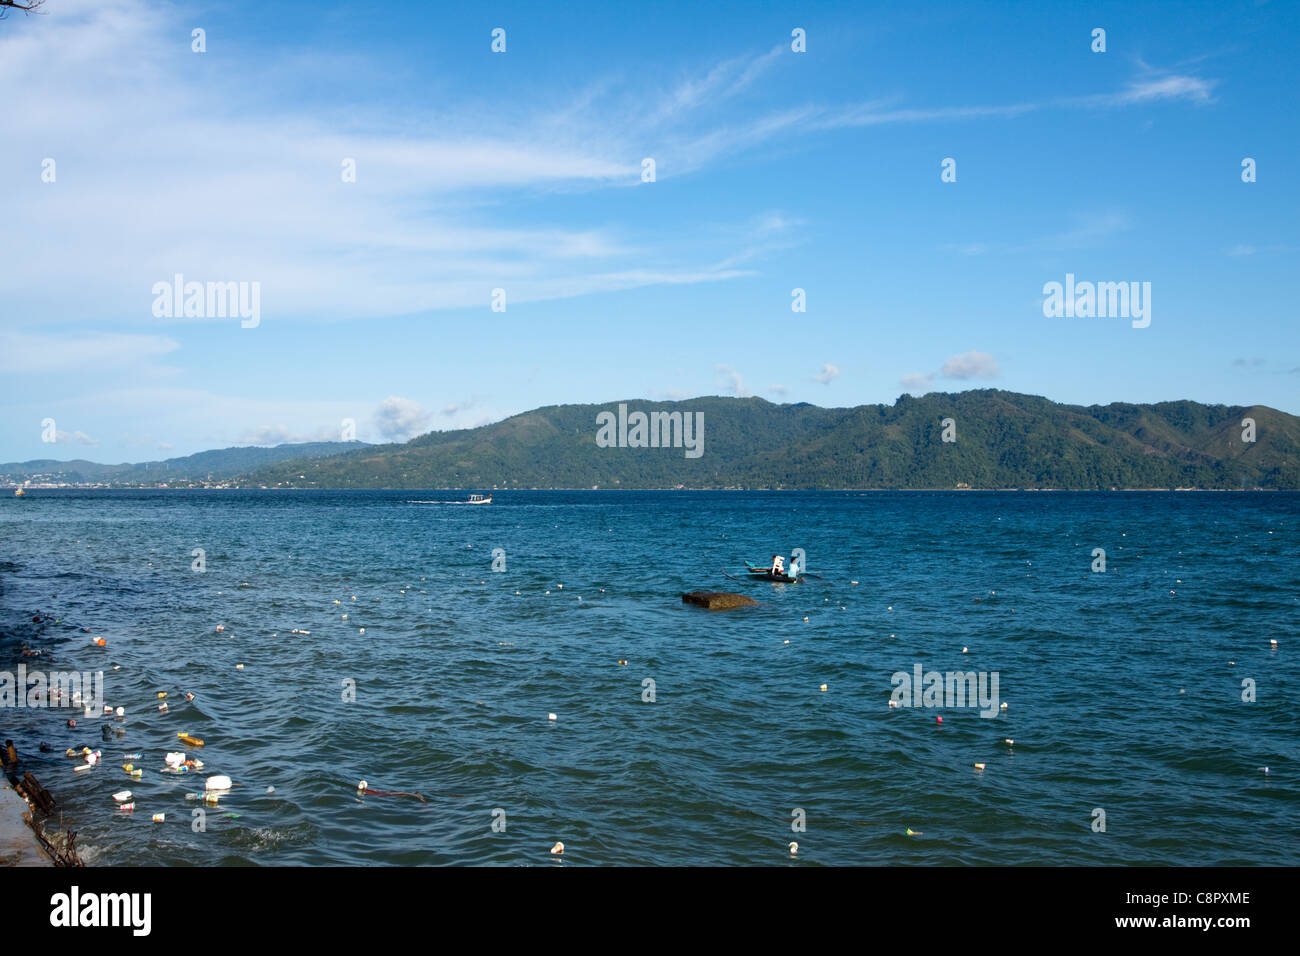 Plastic bottles and litter floating in the sea. Ambon, Indonesia - Stock Image